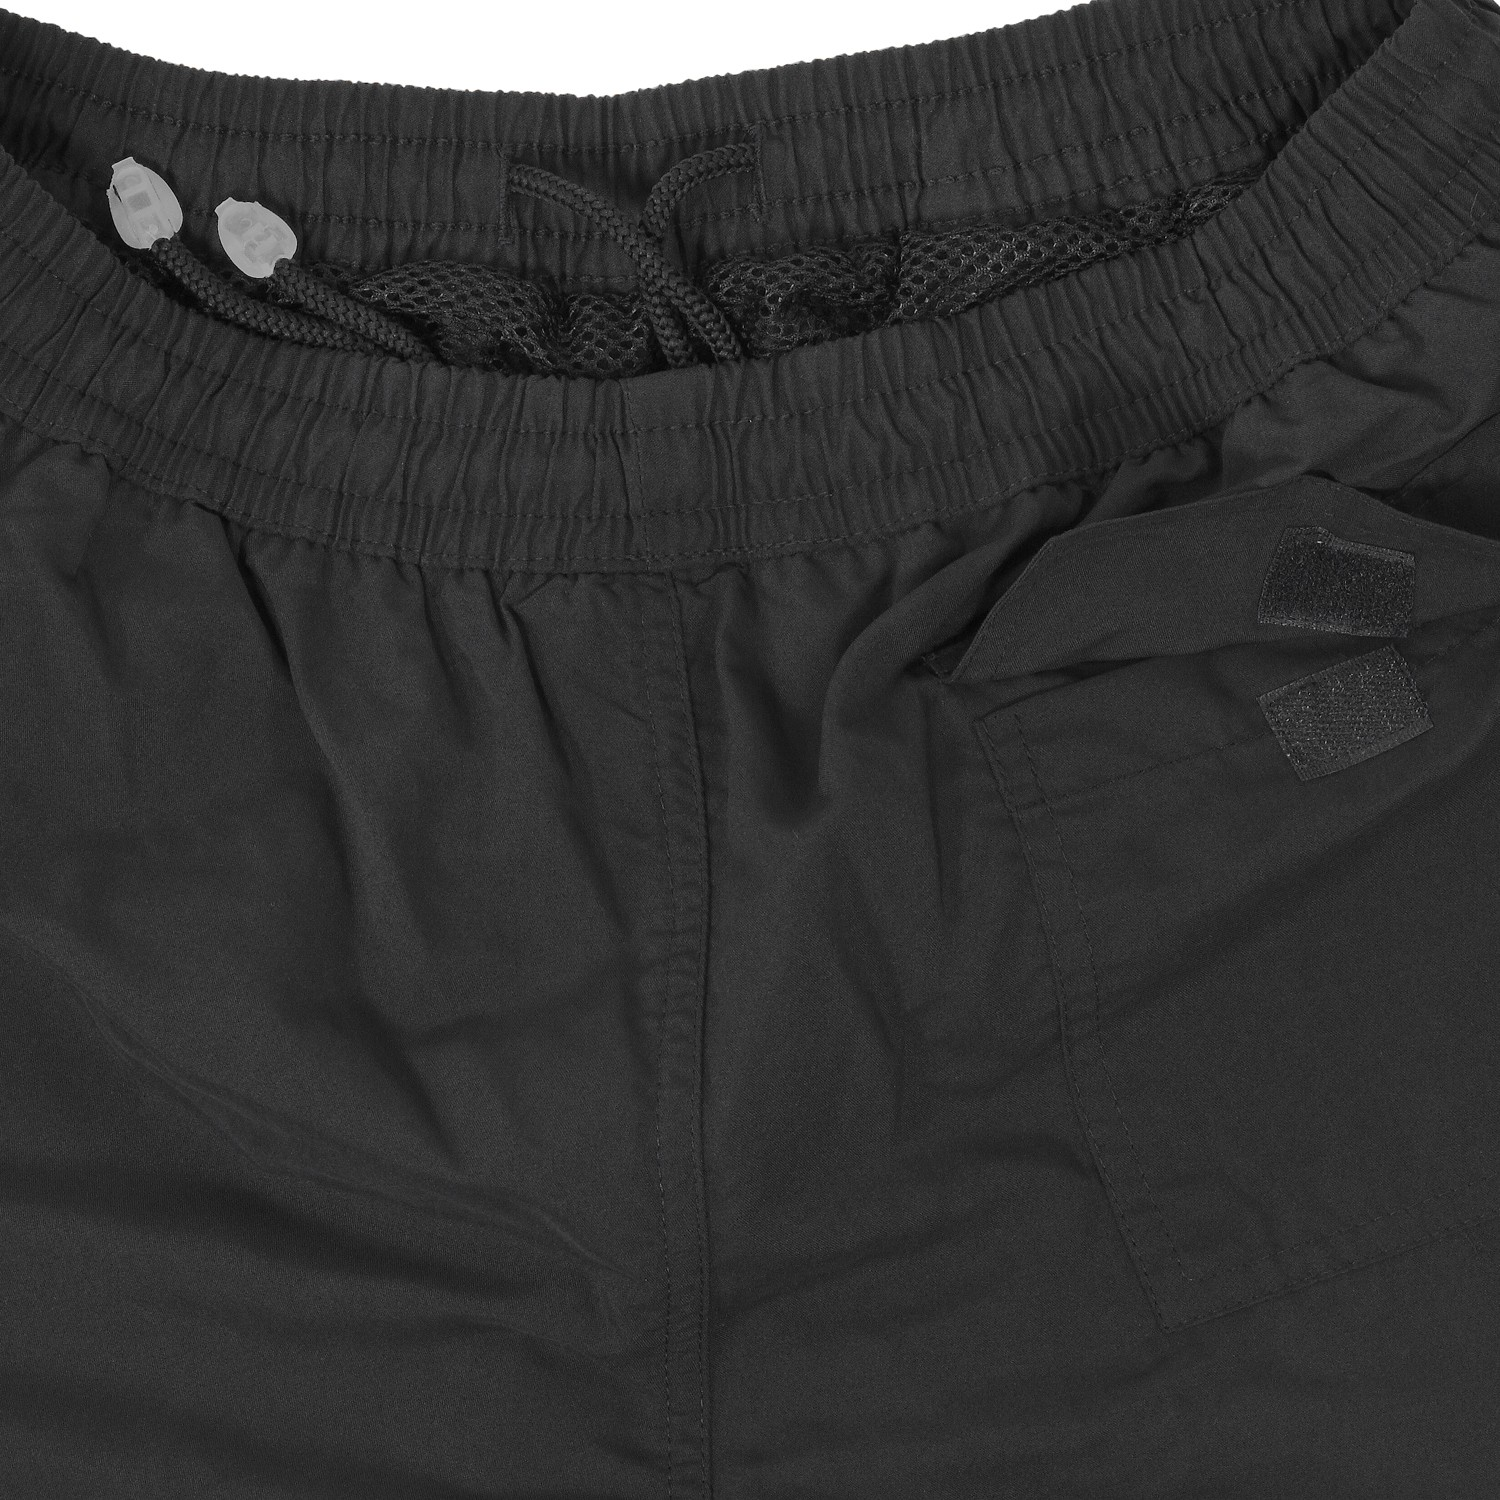 Detail Image to Fitness and swim shorts in black by Ahorn Sportswear up to oversize 10XL